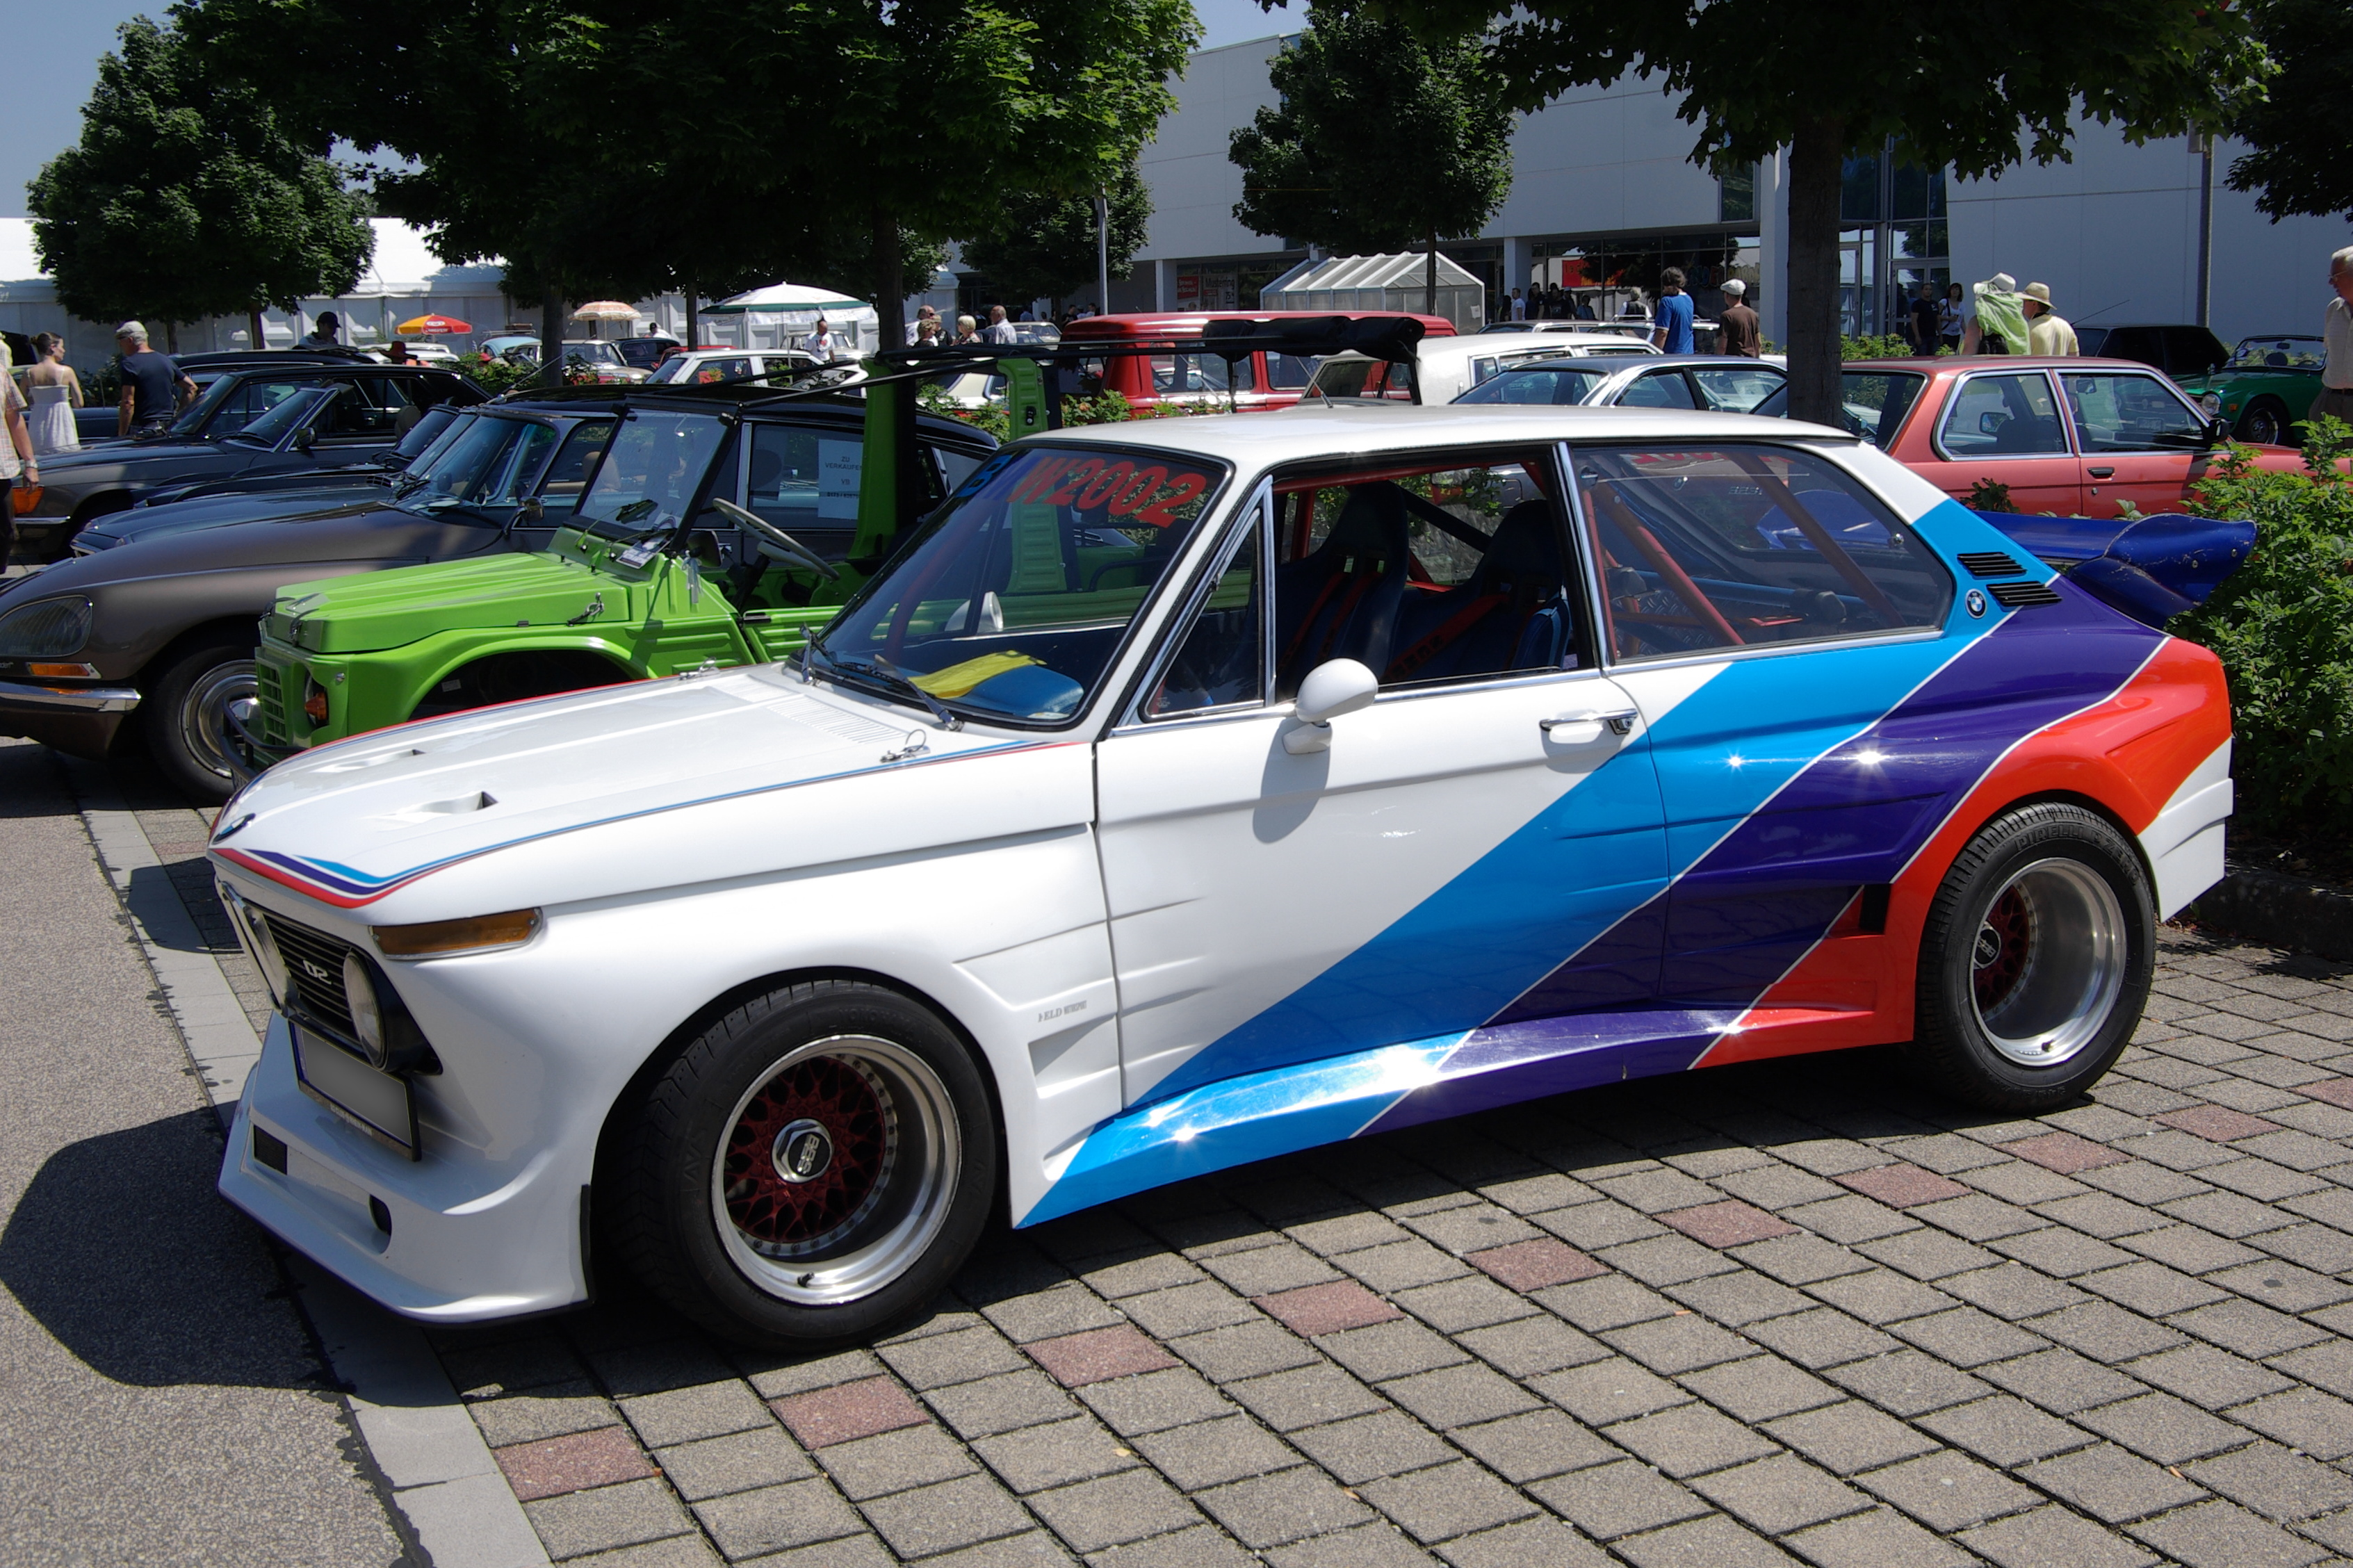 file:bmw 2002 touring 2013-07-21 13-10-35 - wikimedia commons